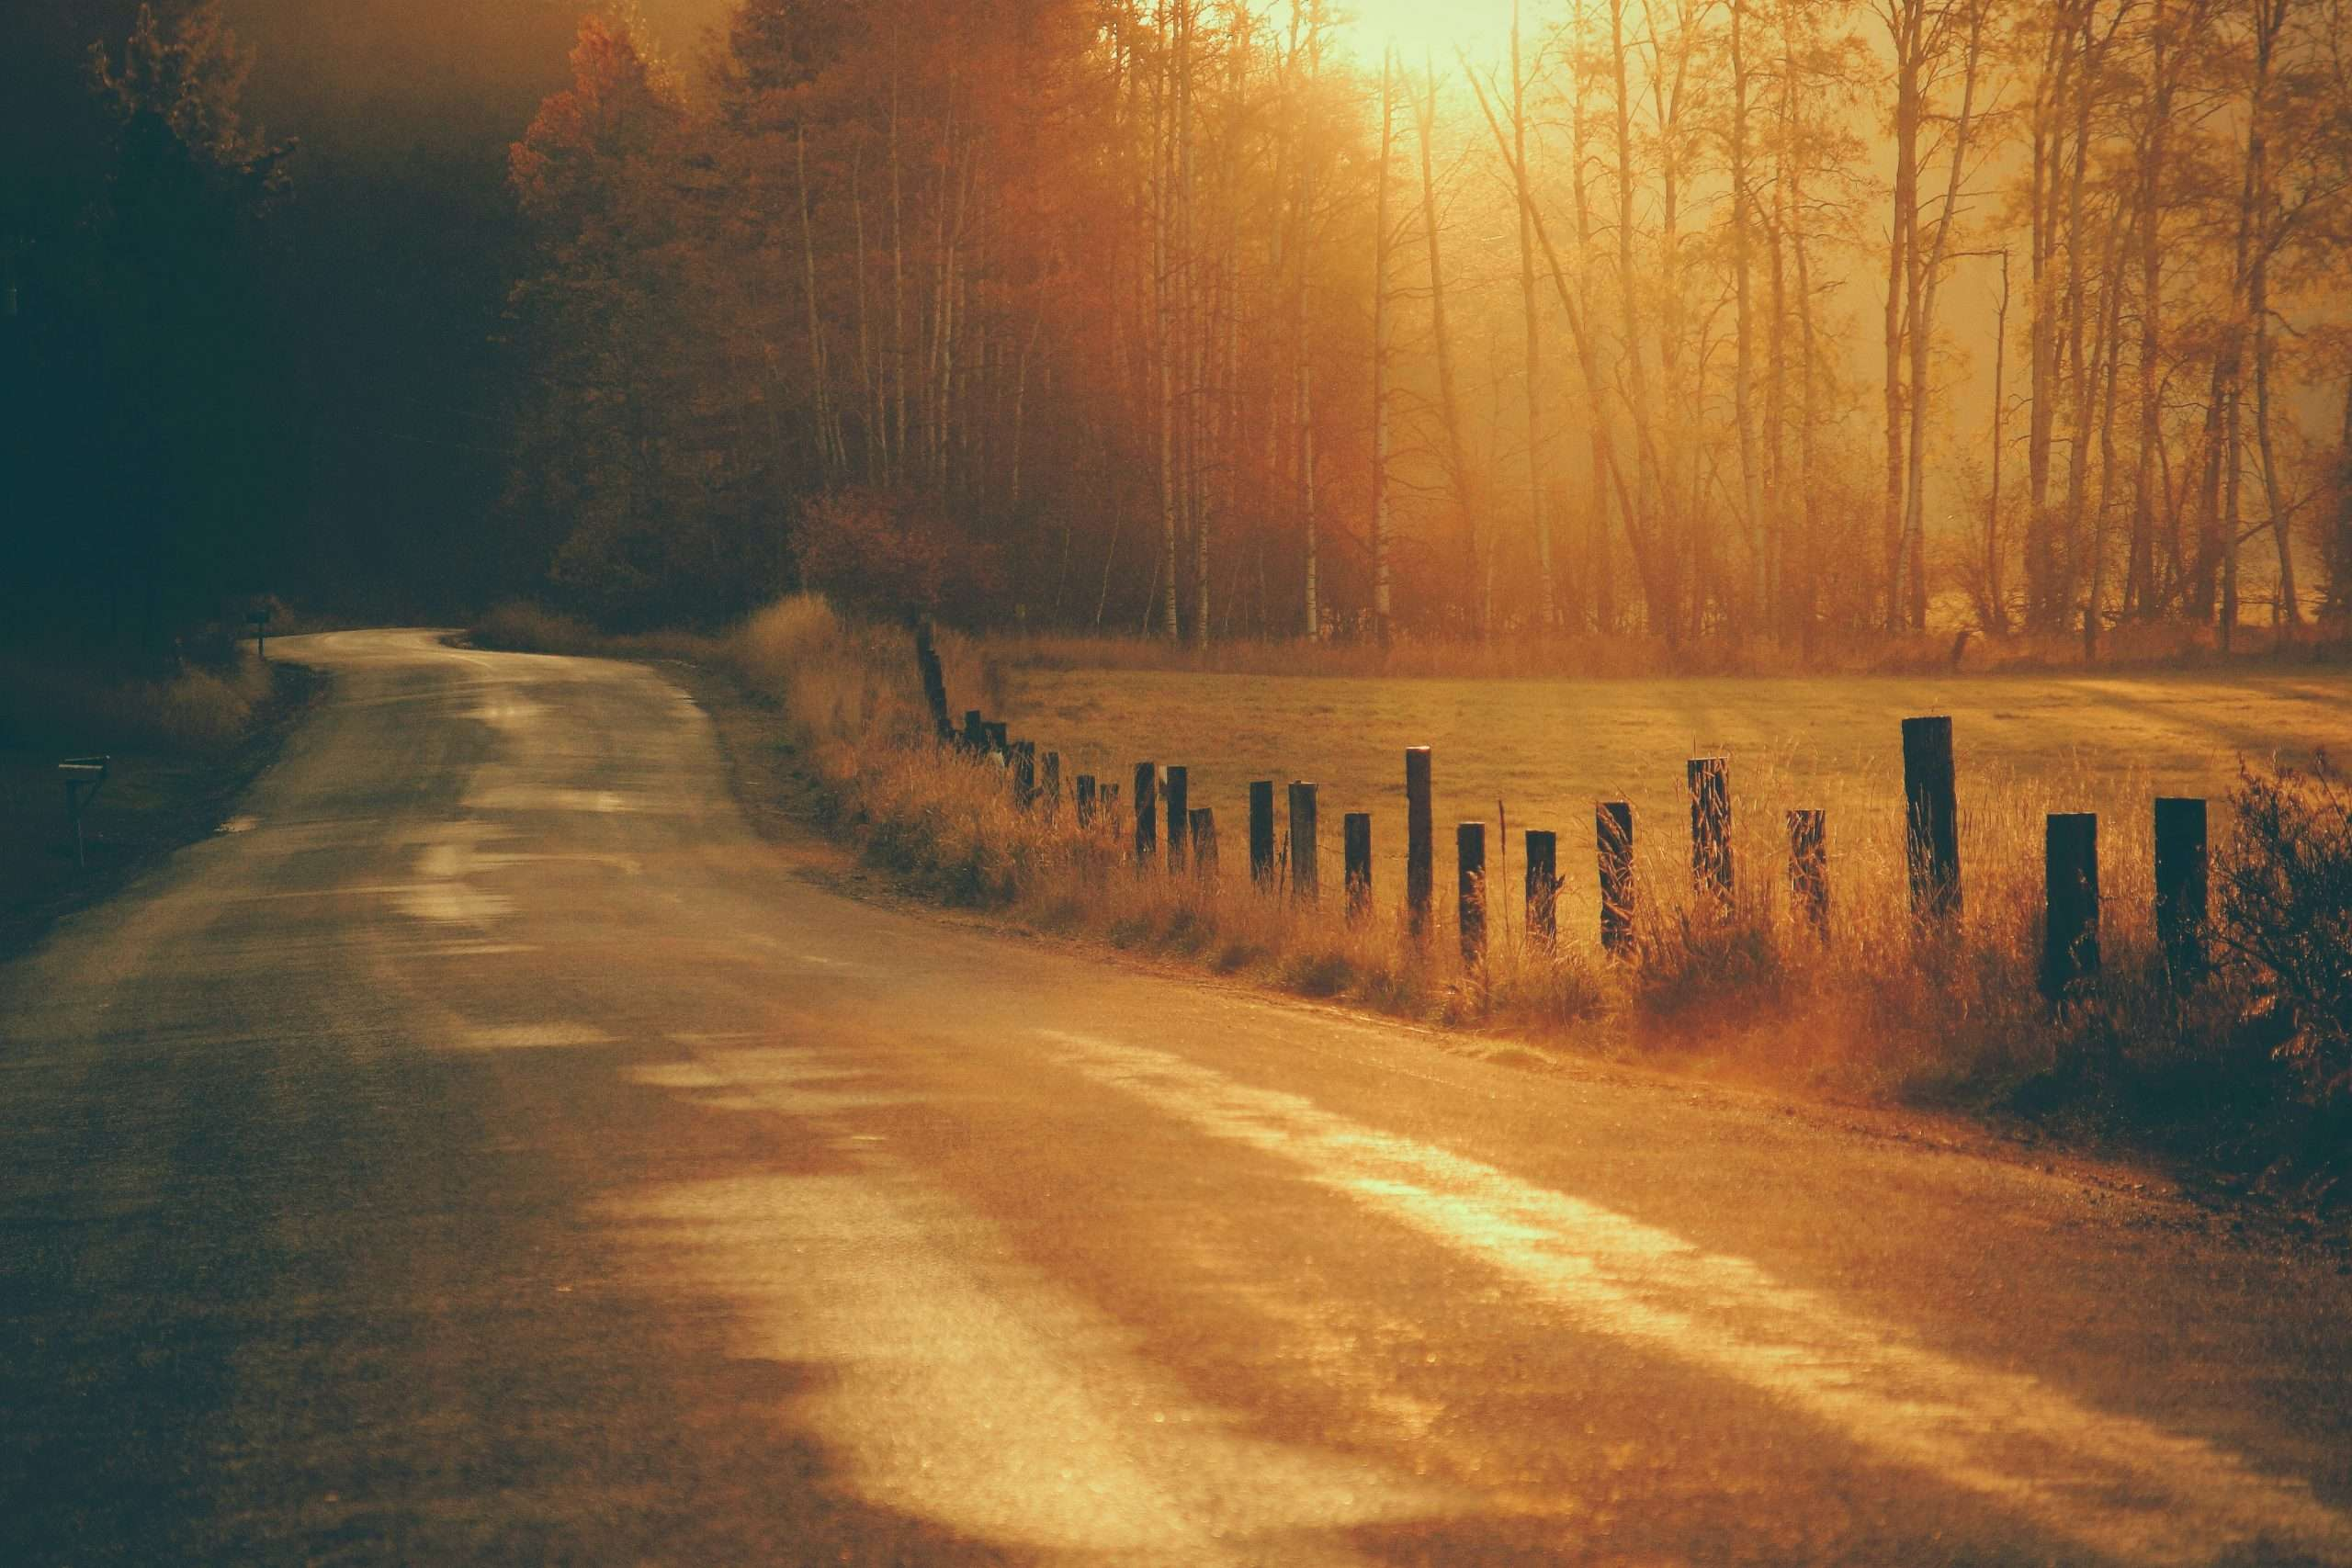 Photo of a country road scene